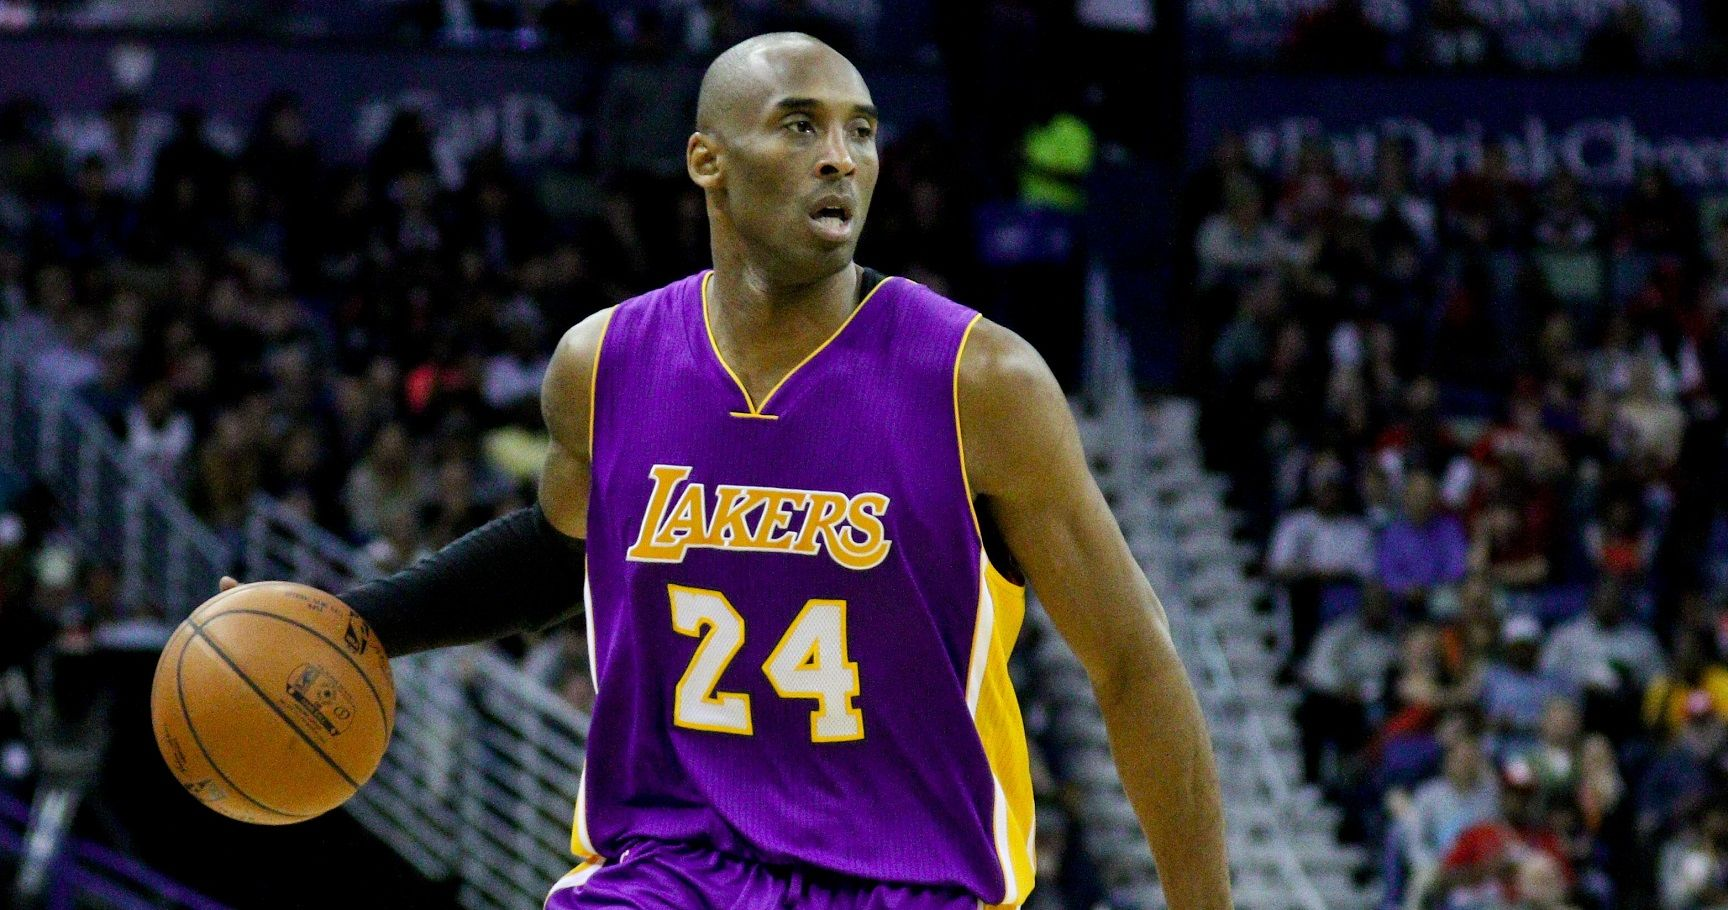 Top 20 Athletes Who Should Retire In 2015